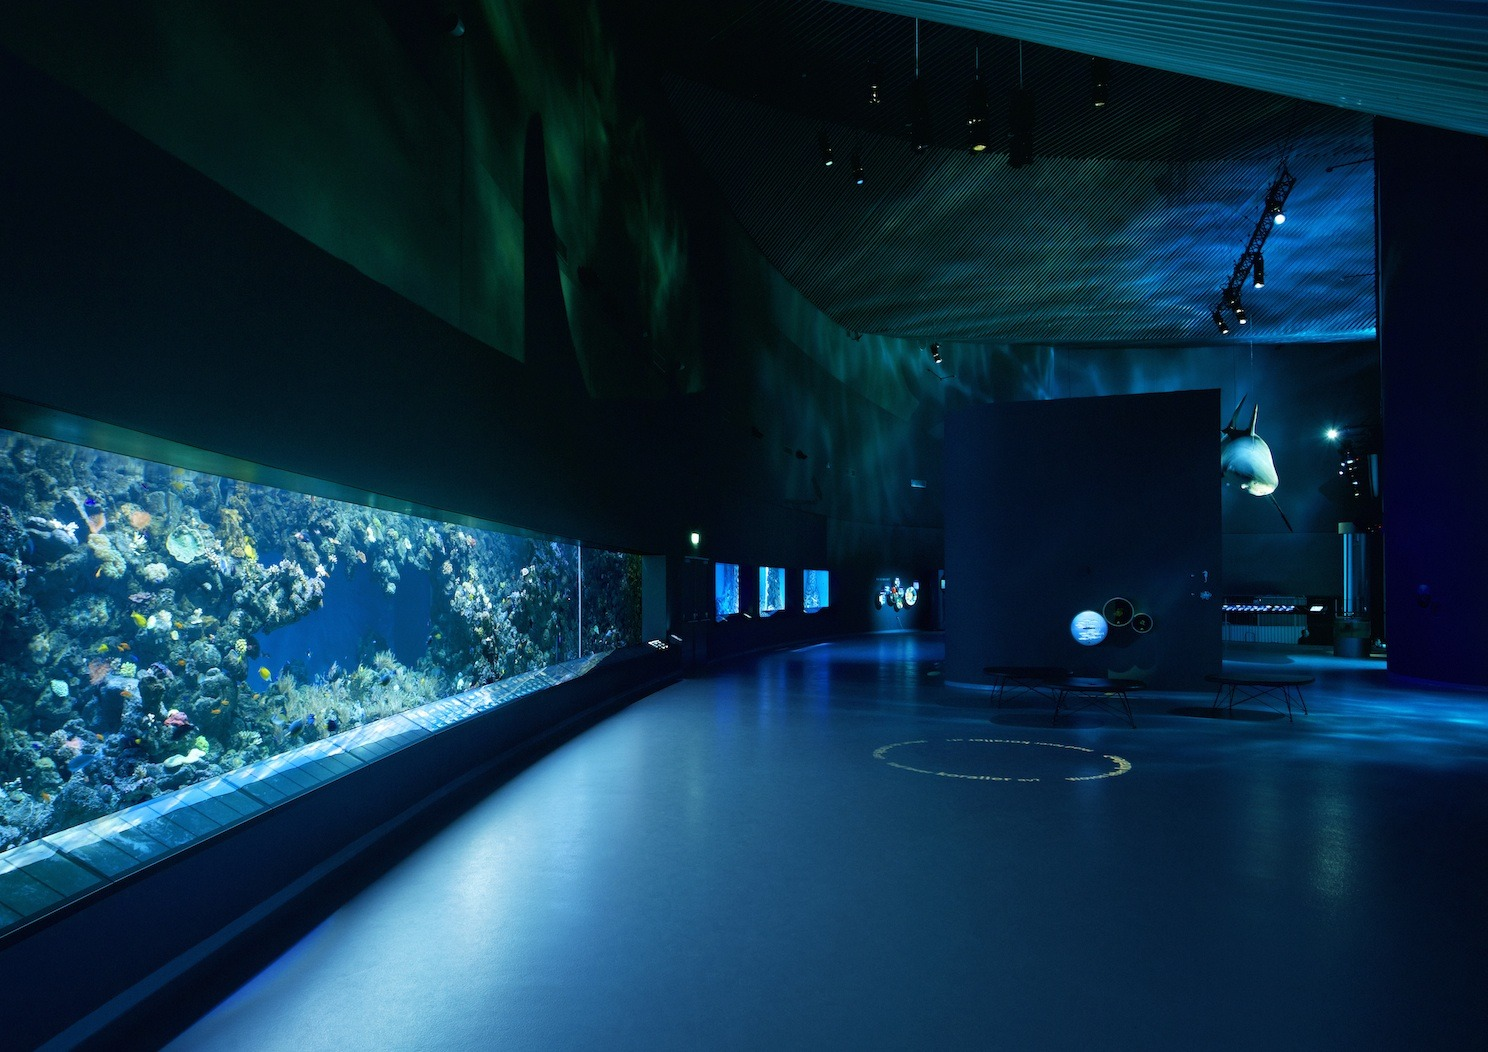 biru planet Denmark Aquarium umum